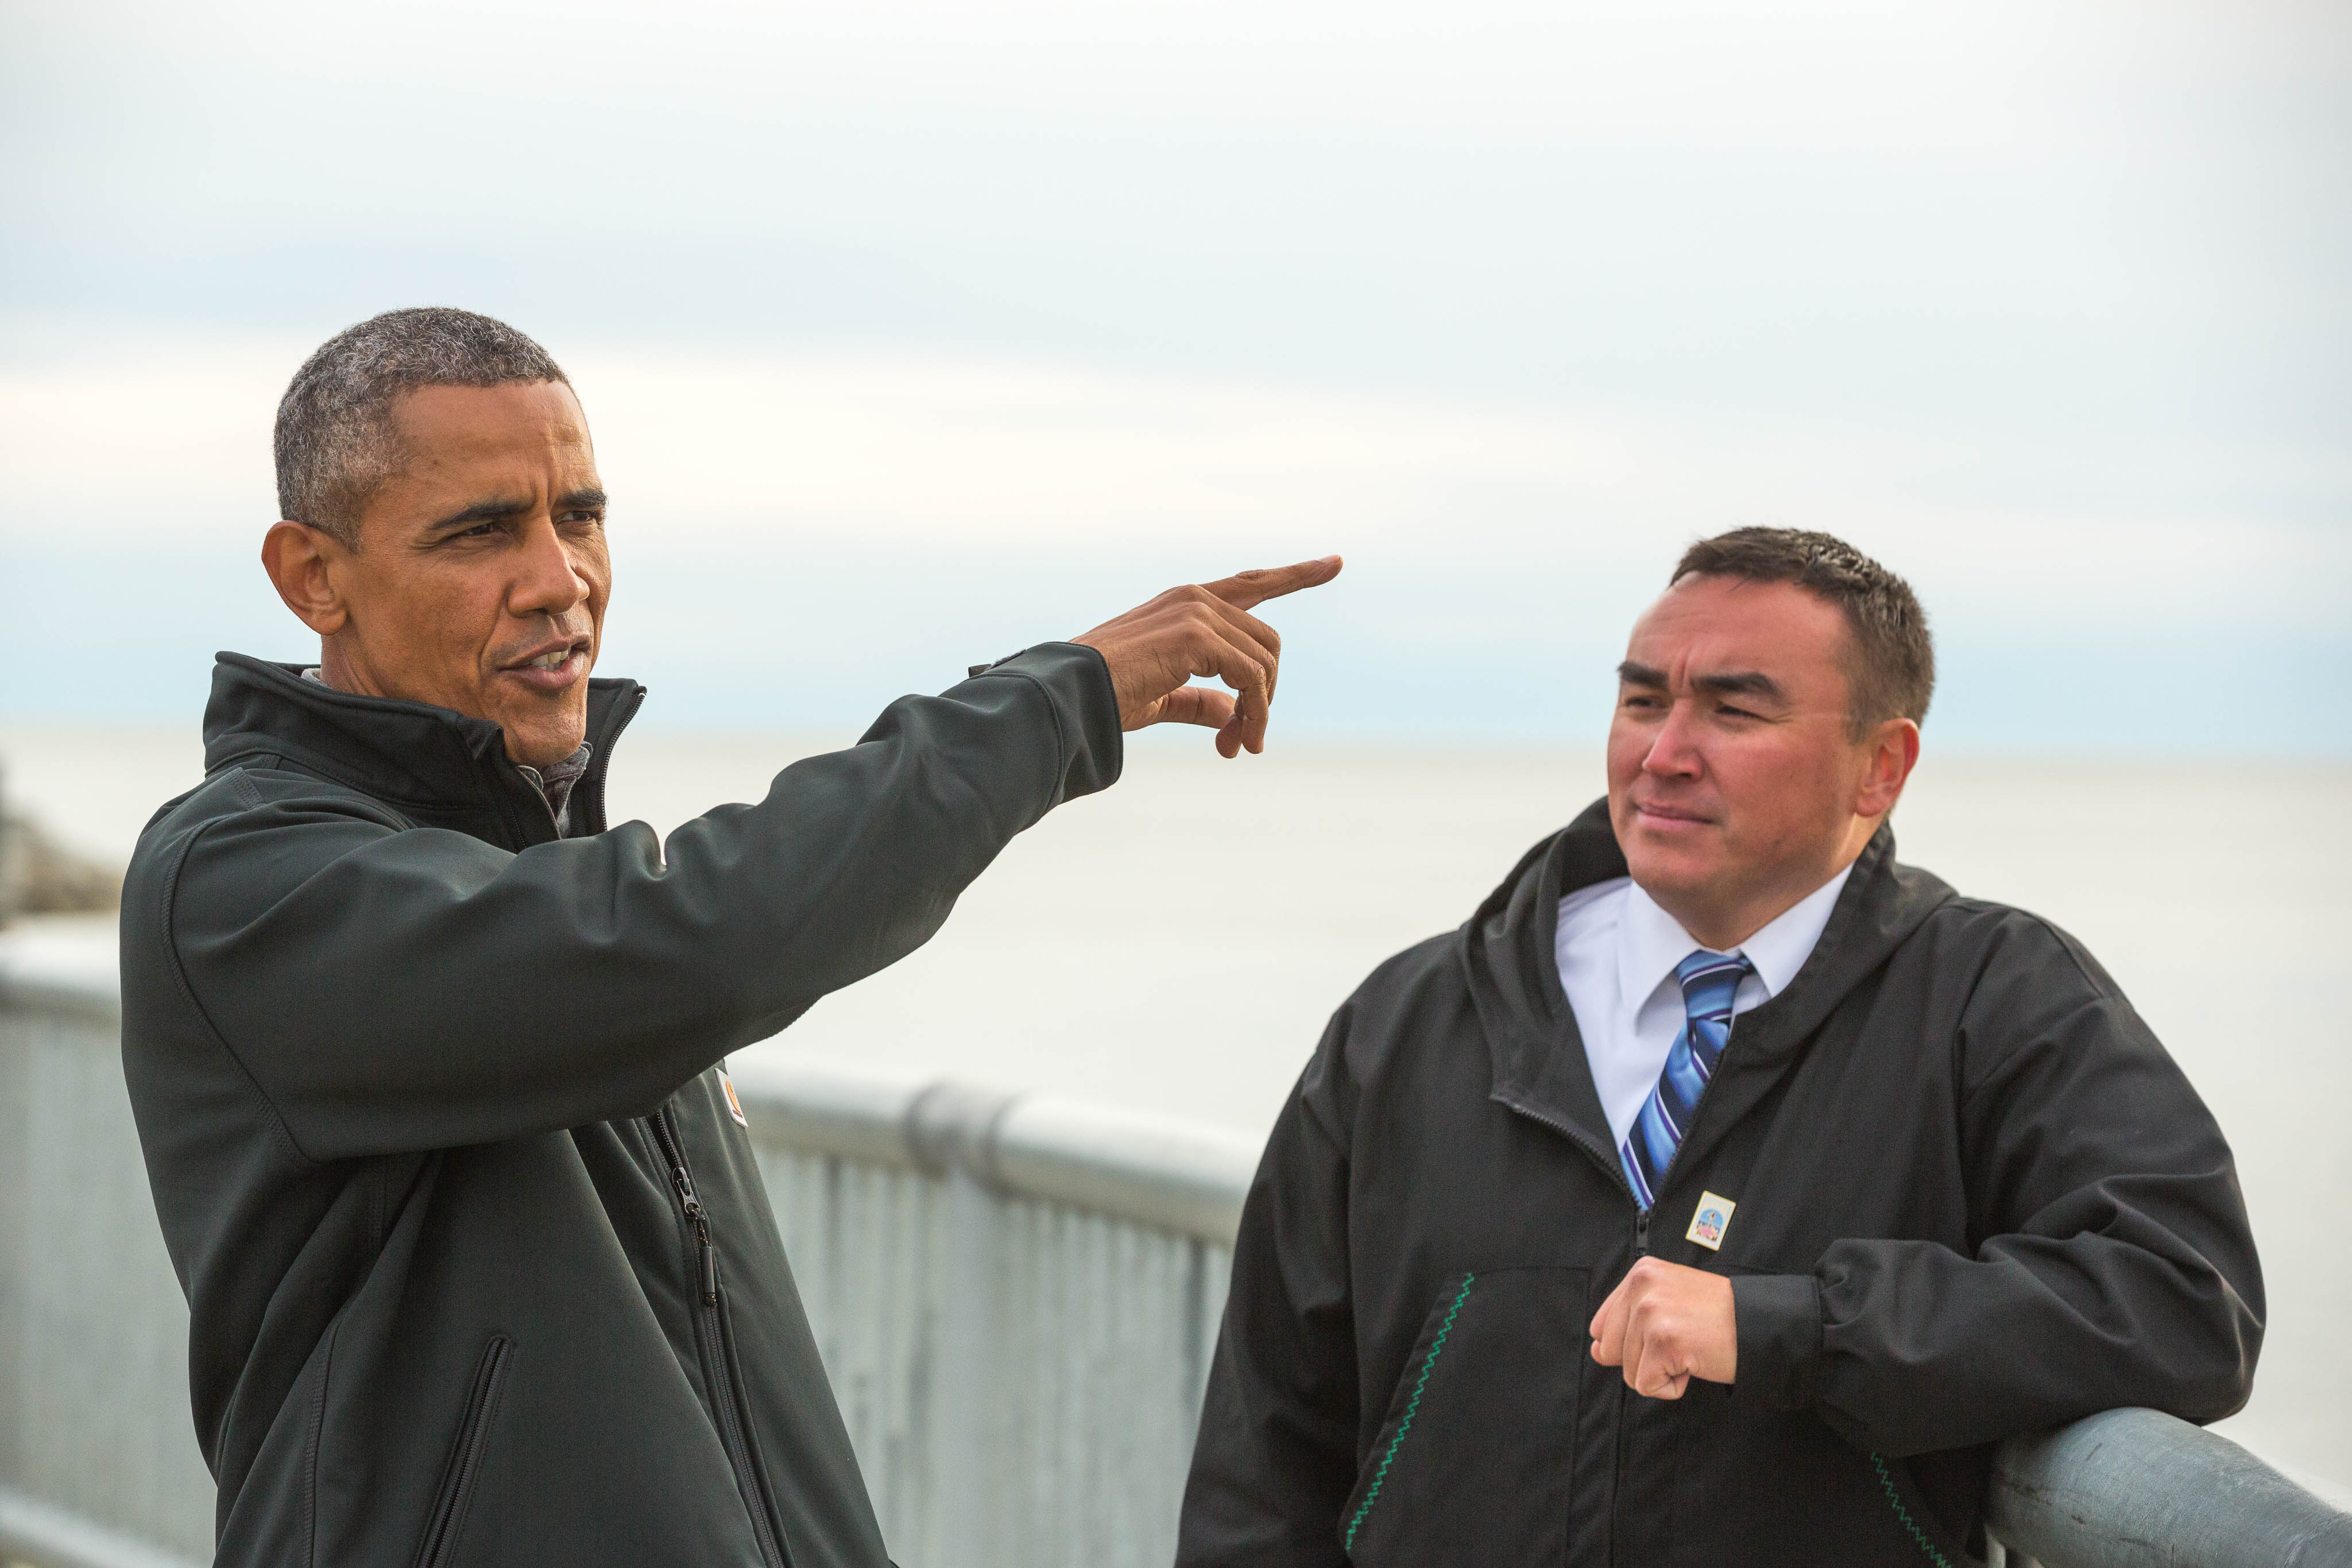 Out of campaign spotlight, Obama keeps focus on Arctic, says White House official